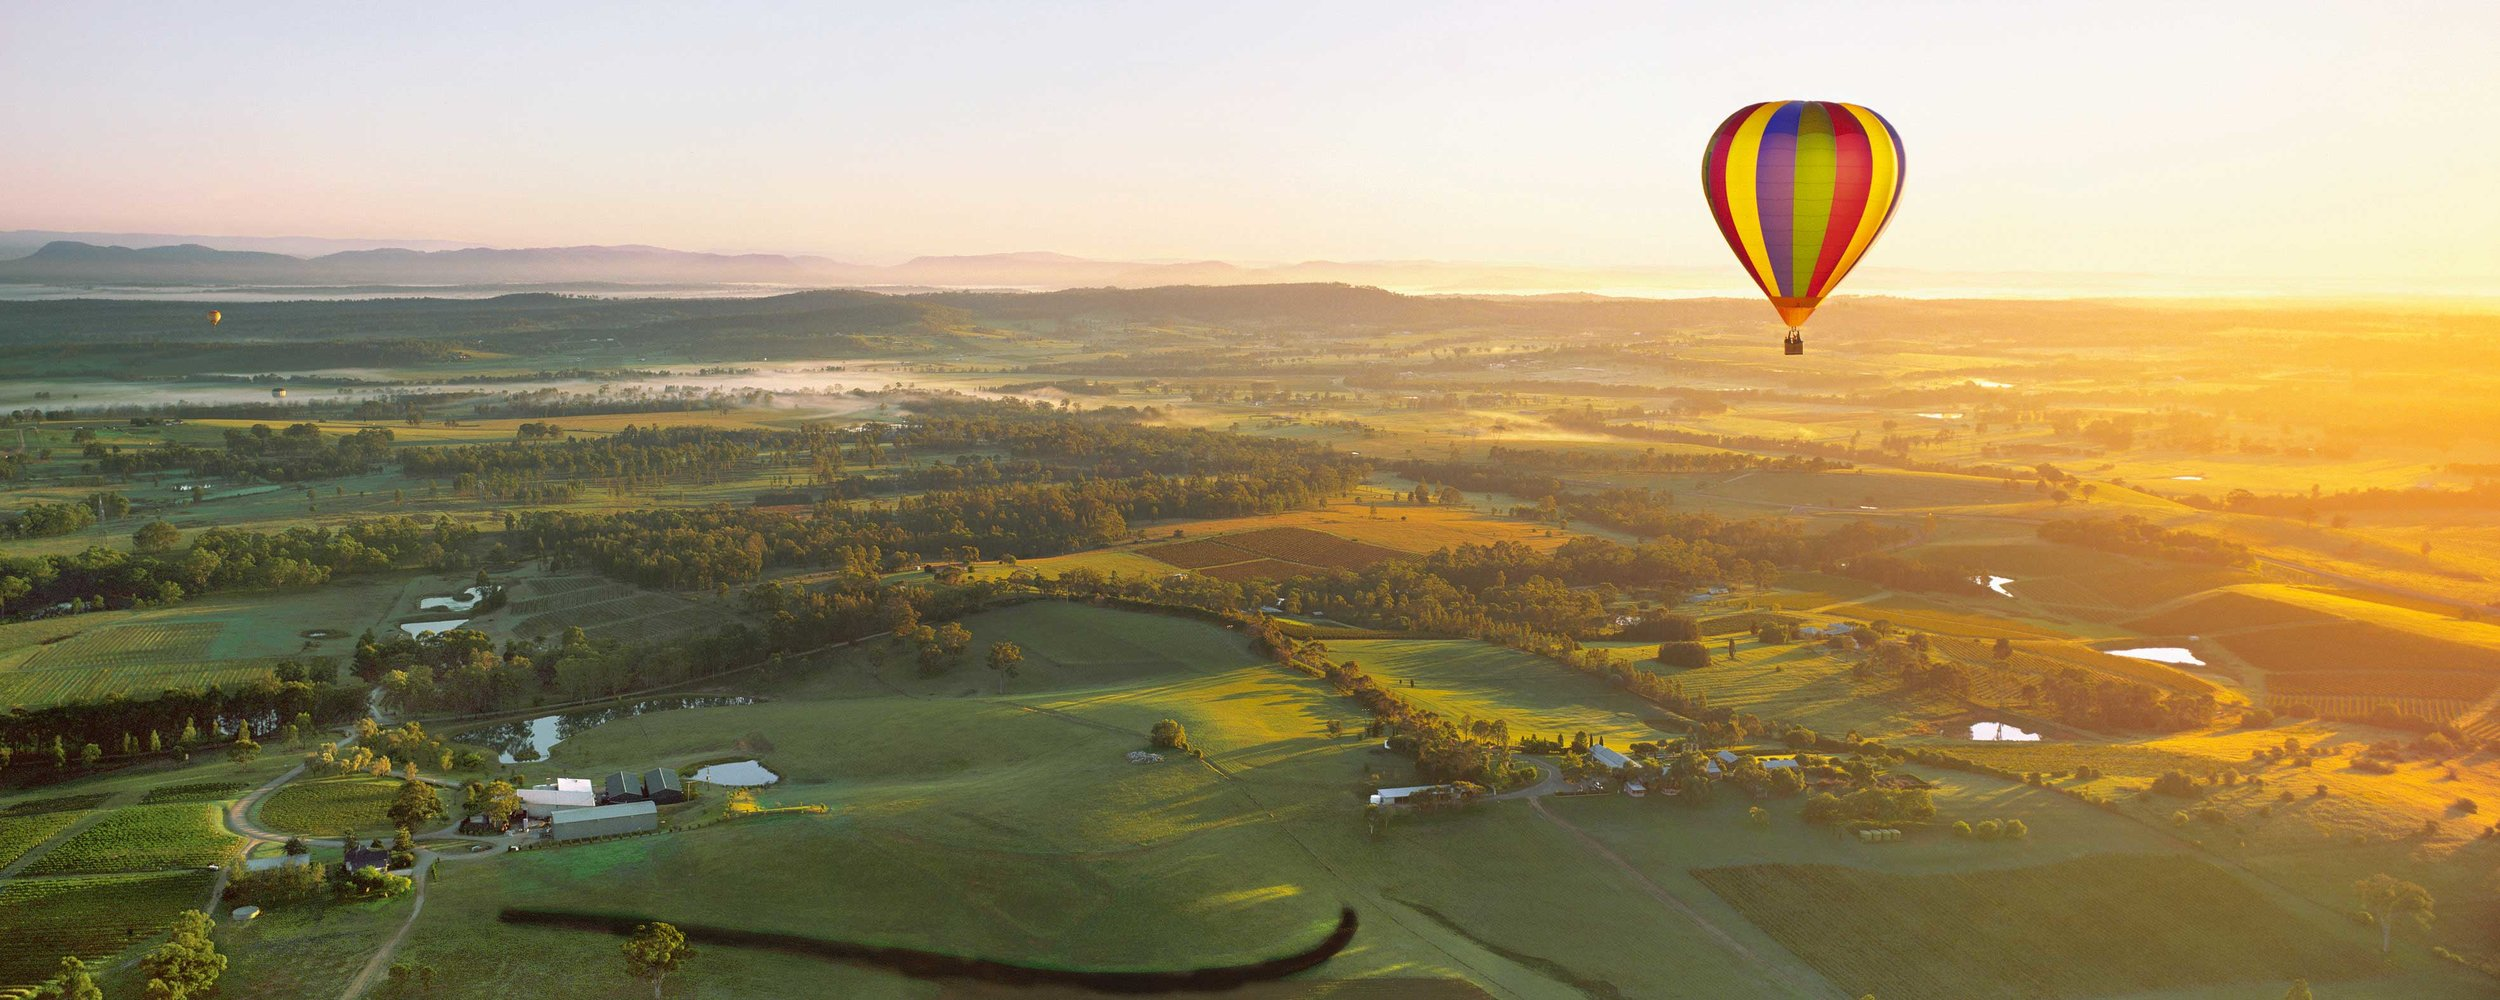 credit-as-Balloons-at-Dawn-Ken-Duncan-Photography-courtesy-of-Hunter-Valley-Wine-Country-Tourism.jpg